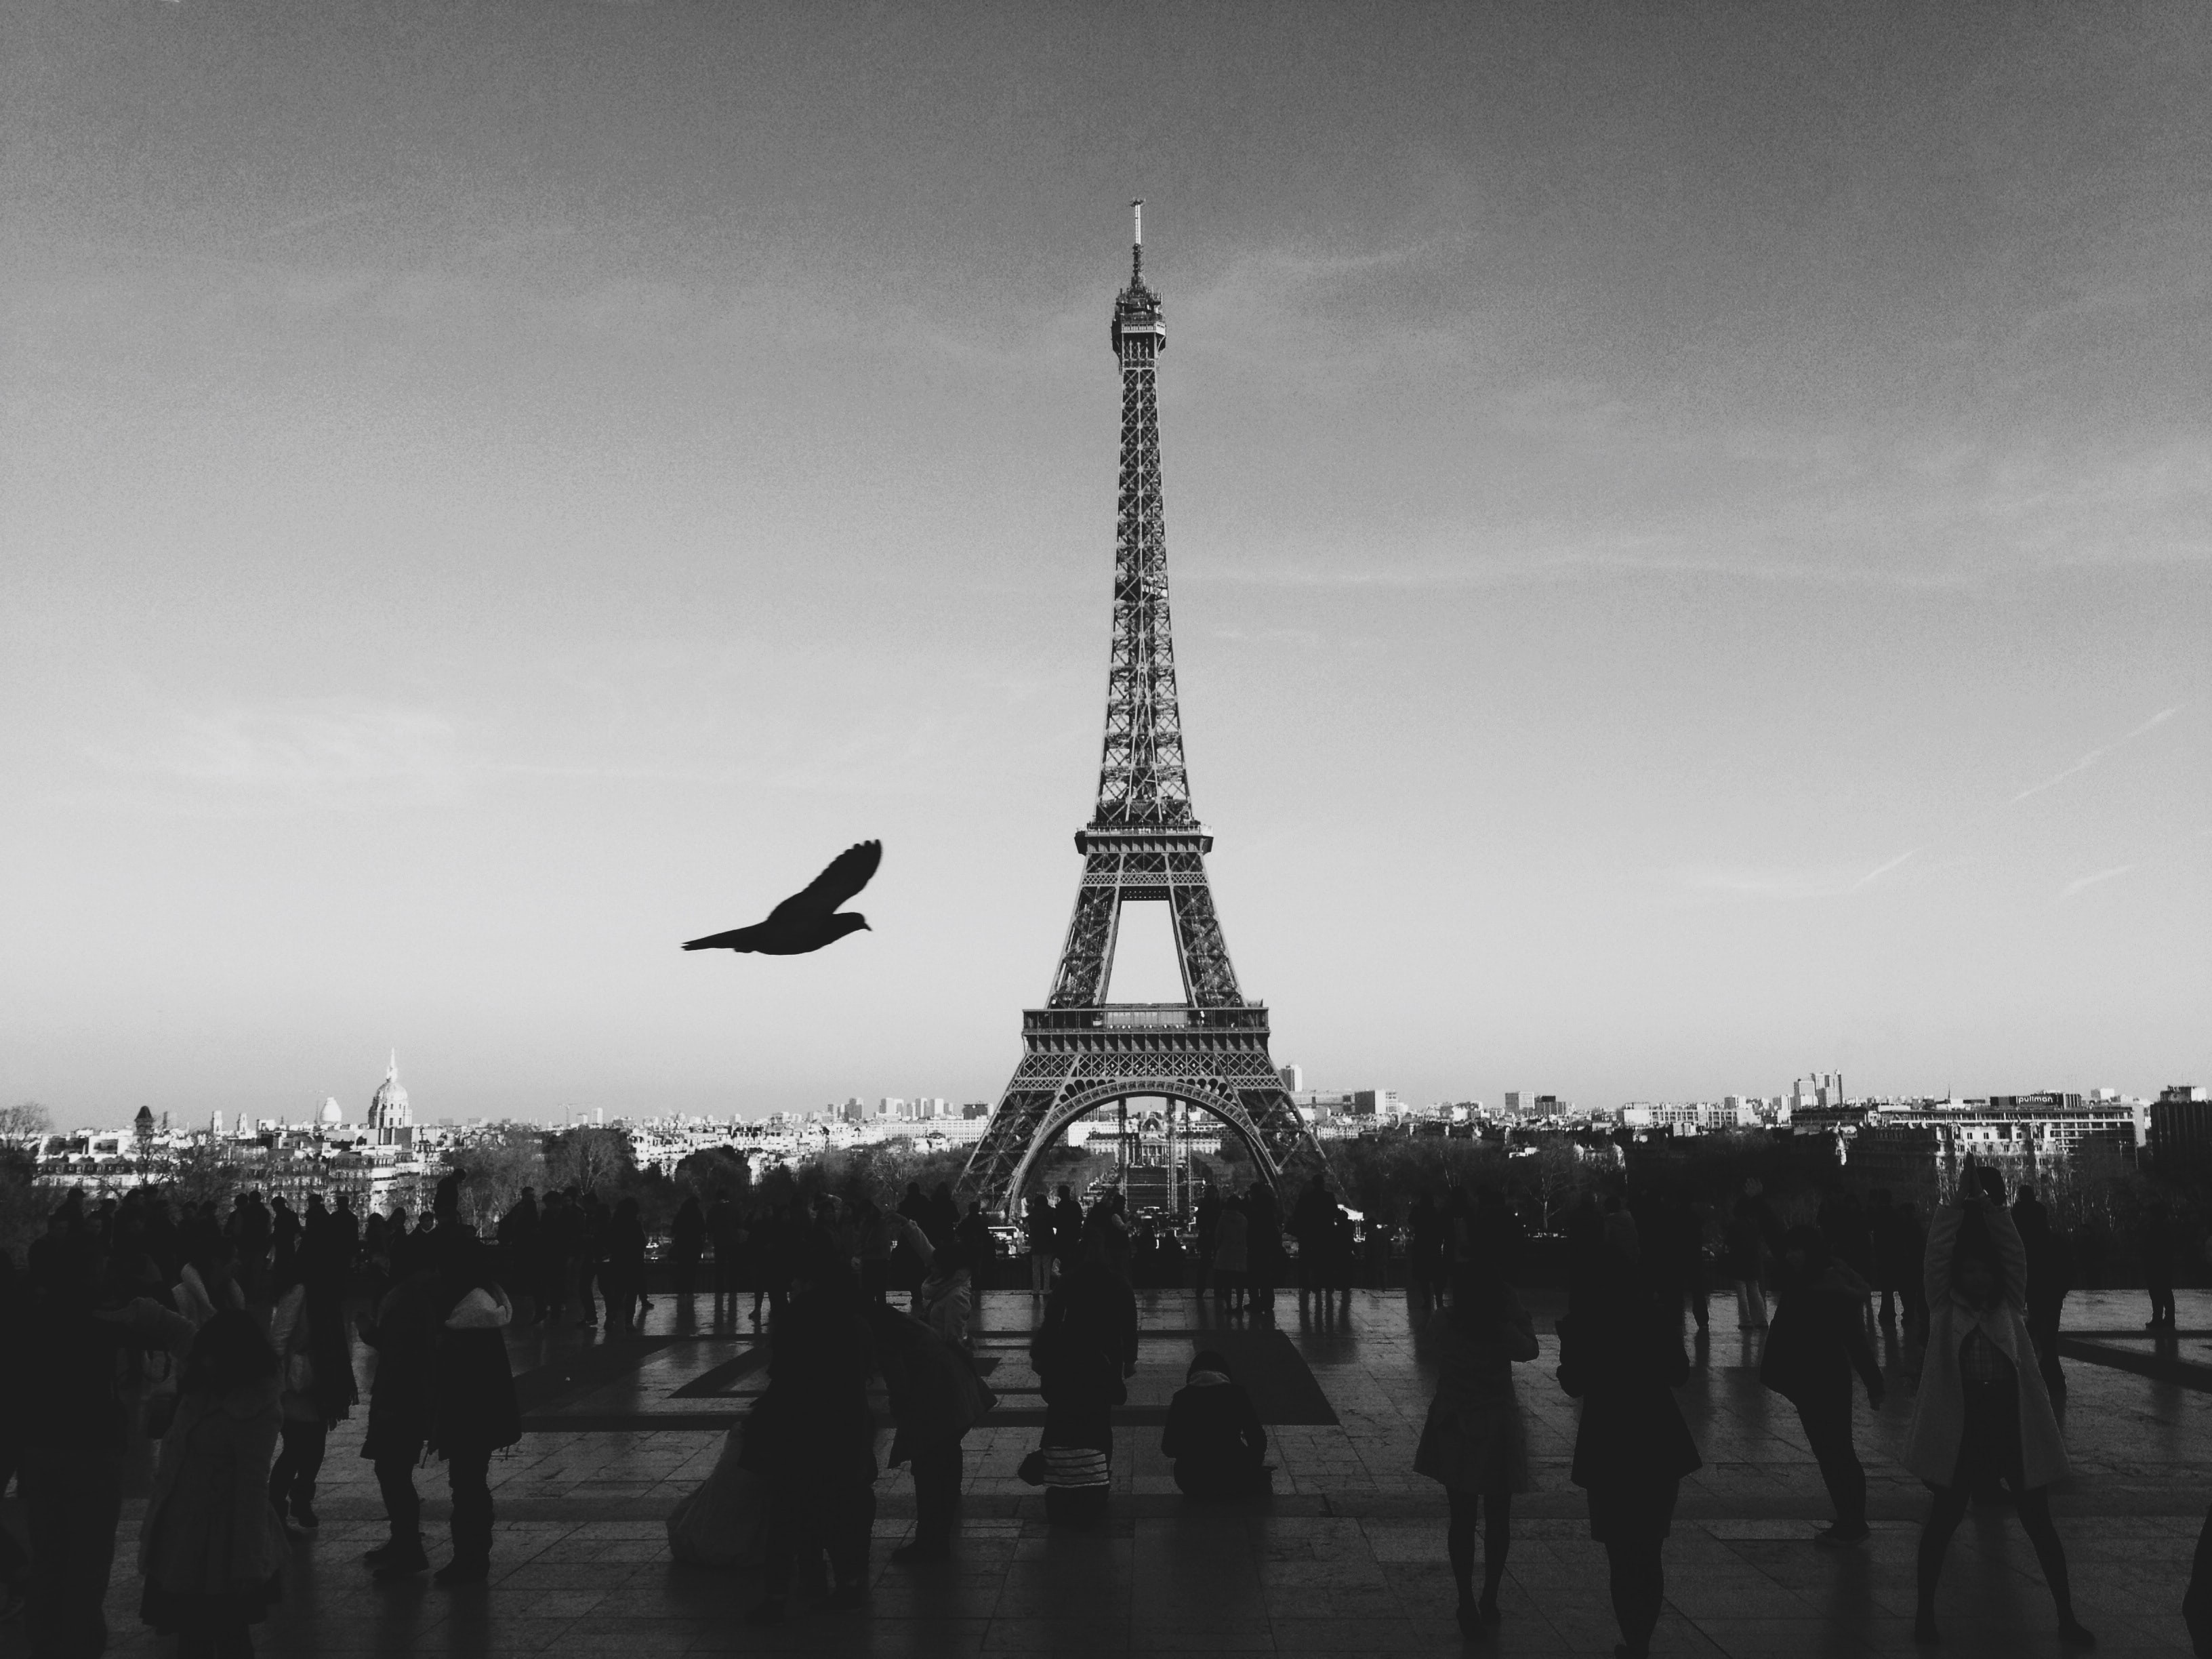 A black and white shot of the Eiffel Tower from Trocadéro with a bird flying across